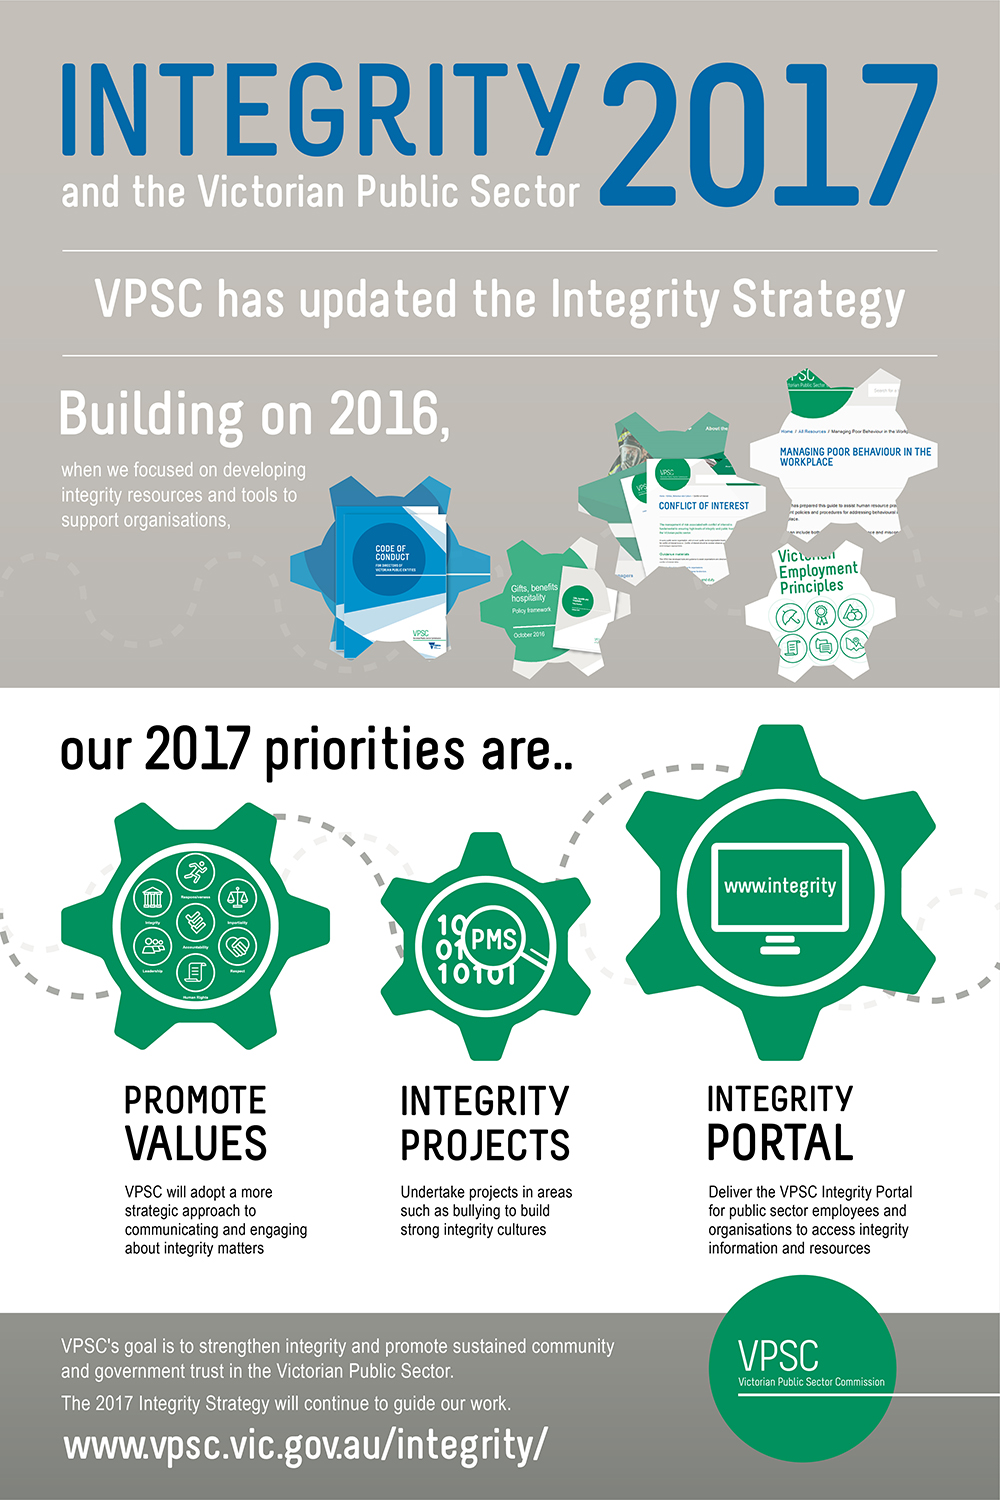 VPSC has updated its Integrity Strategy 2017. Full text description at https://vpsc.vic.gov.au/ethics-behaviours-culture/promoting-integrity/integrity-strategy-2017-infographic/